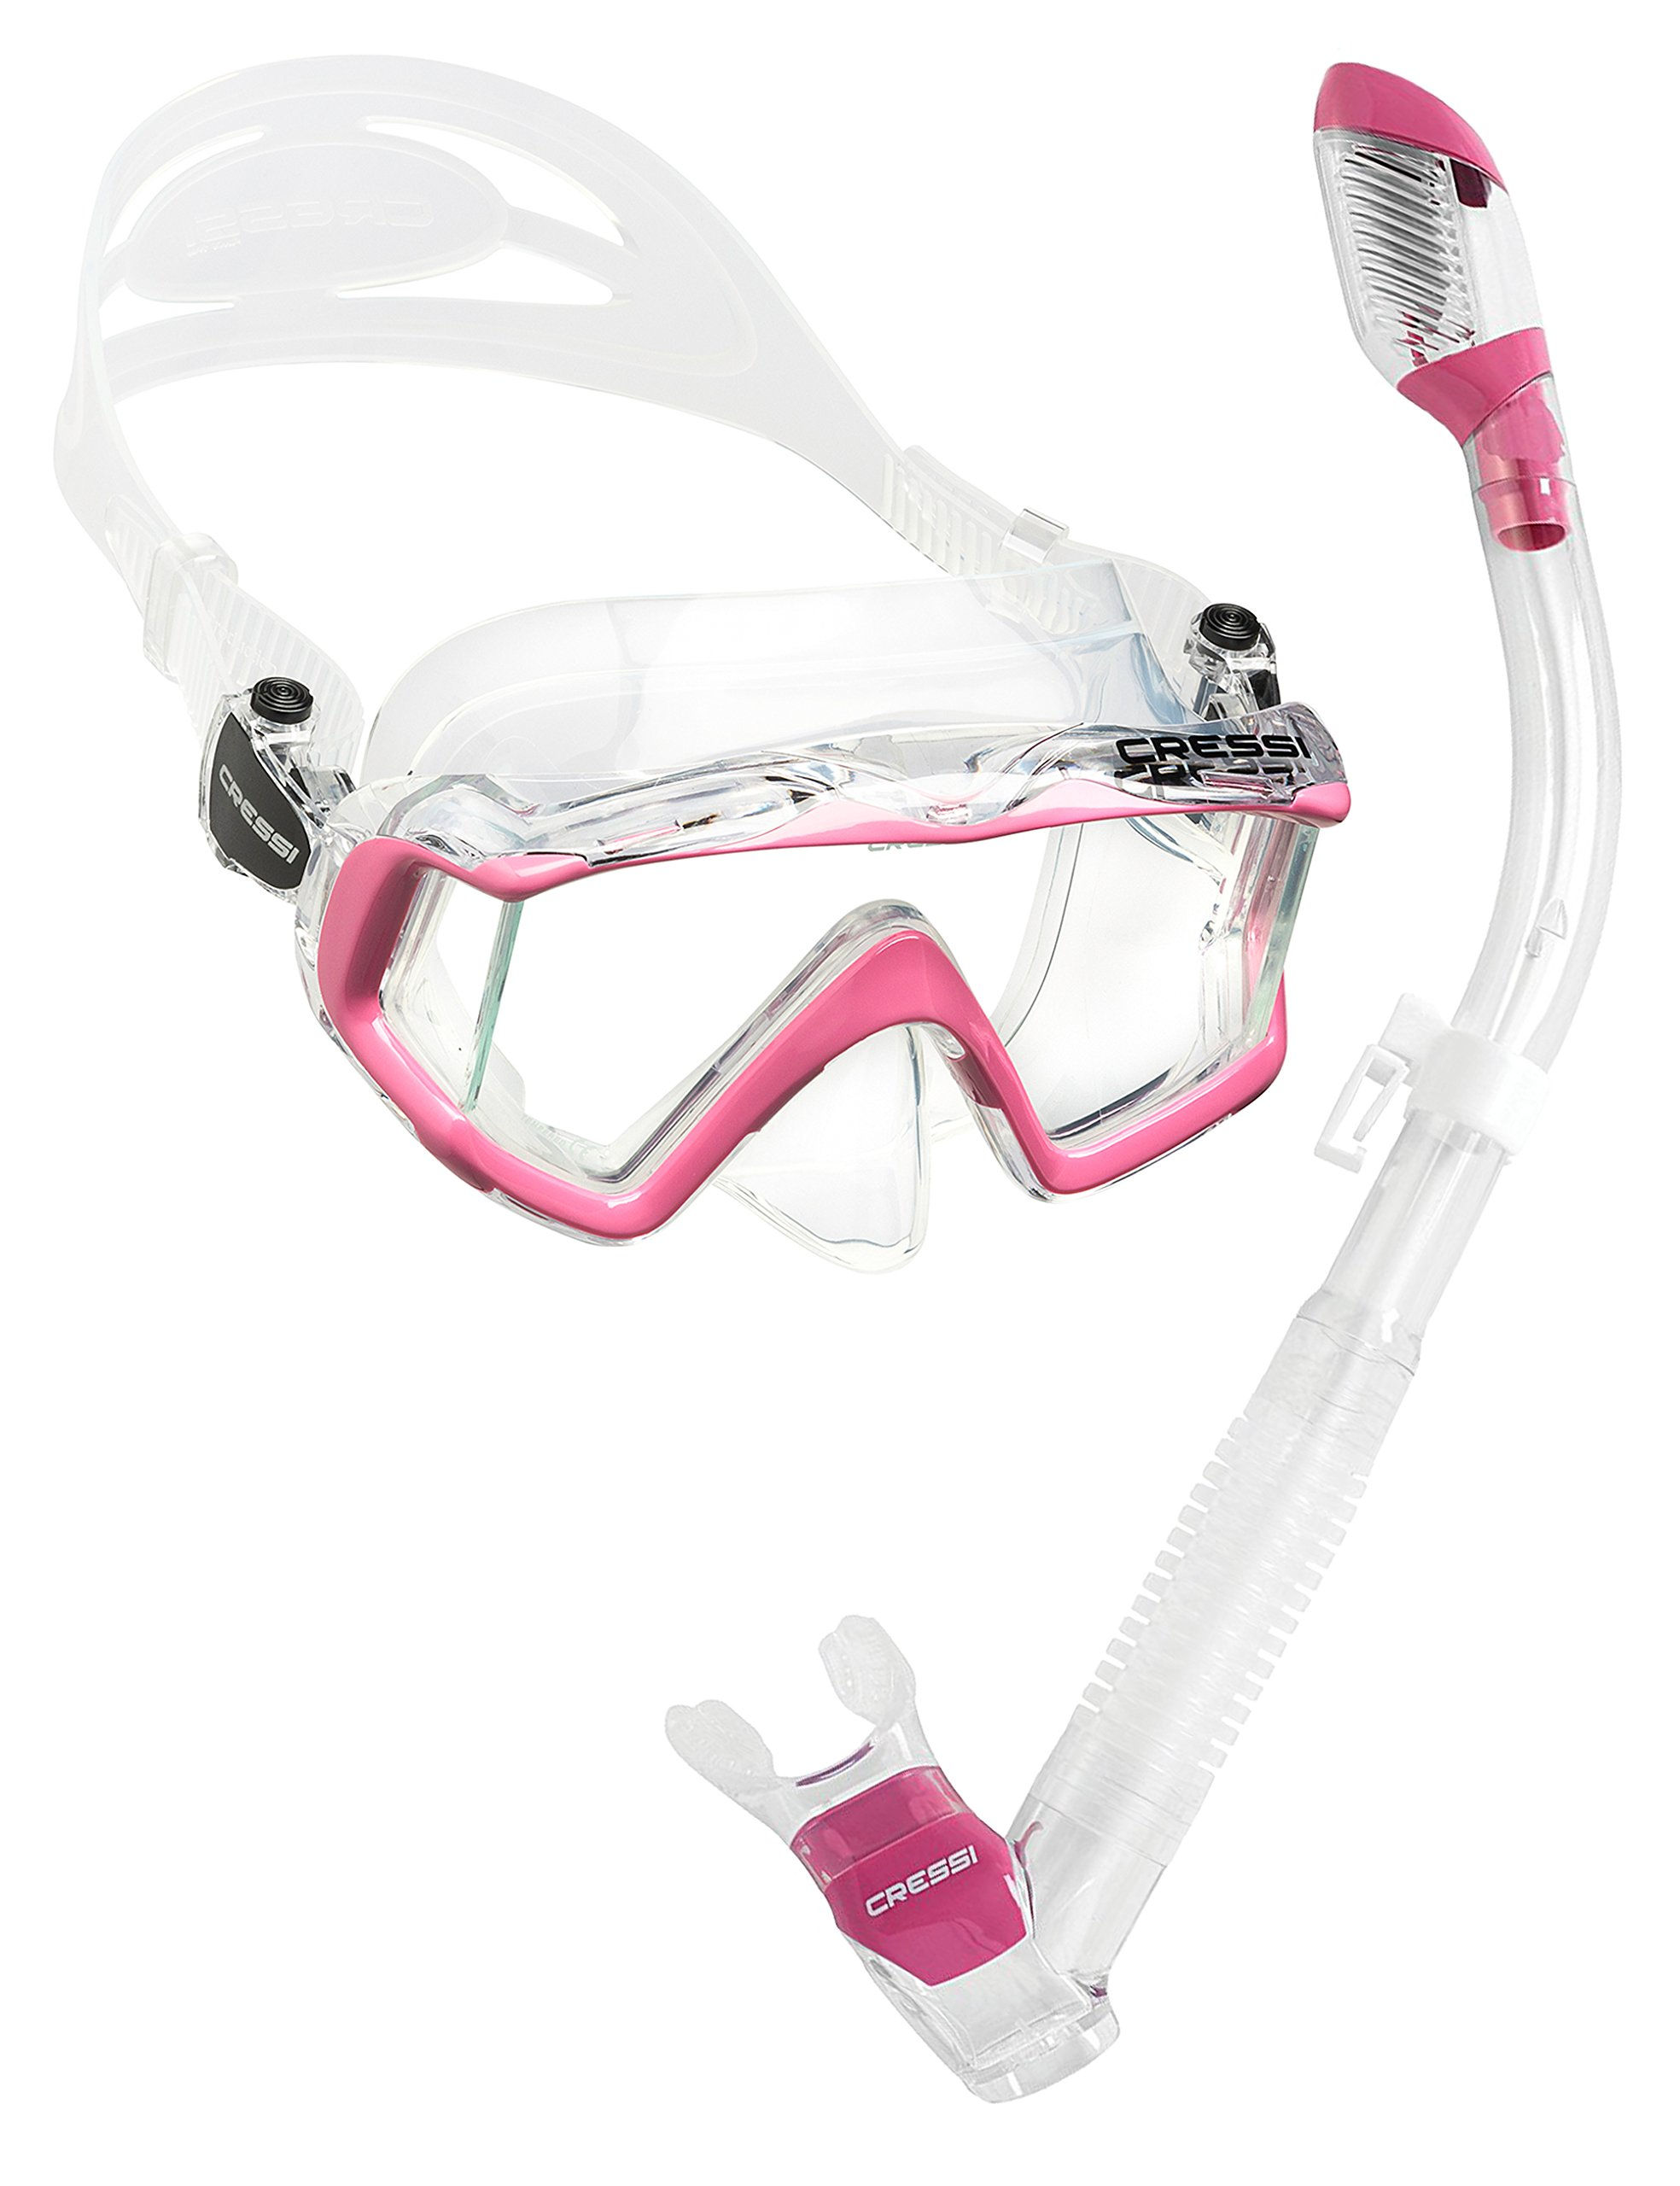 Cressi Panoramic Wide View Mask with Dry Snorkel Set, Clear Pink